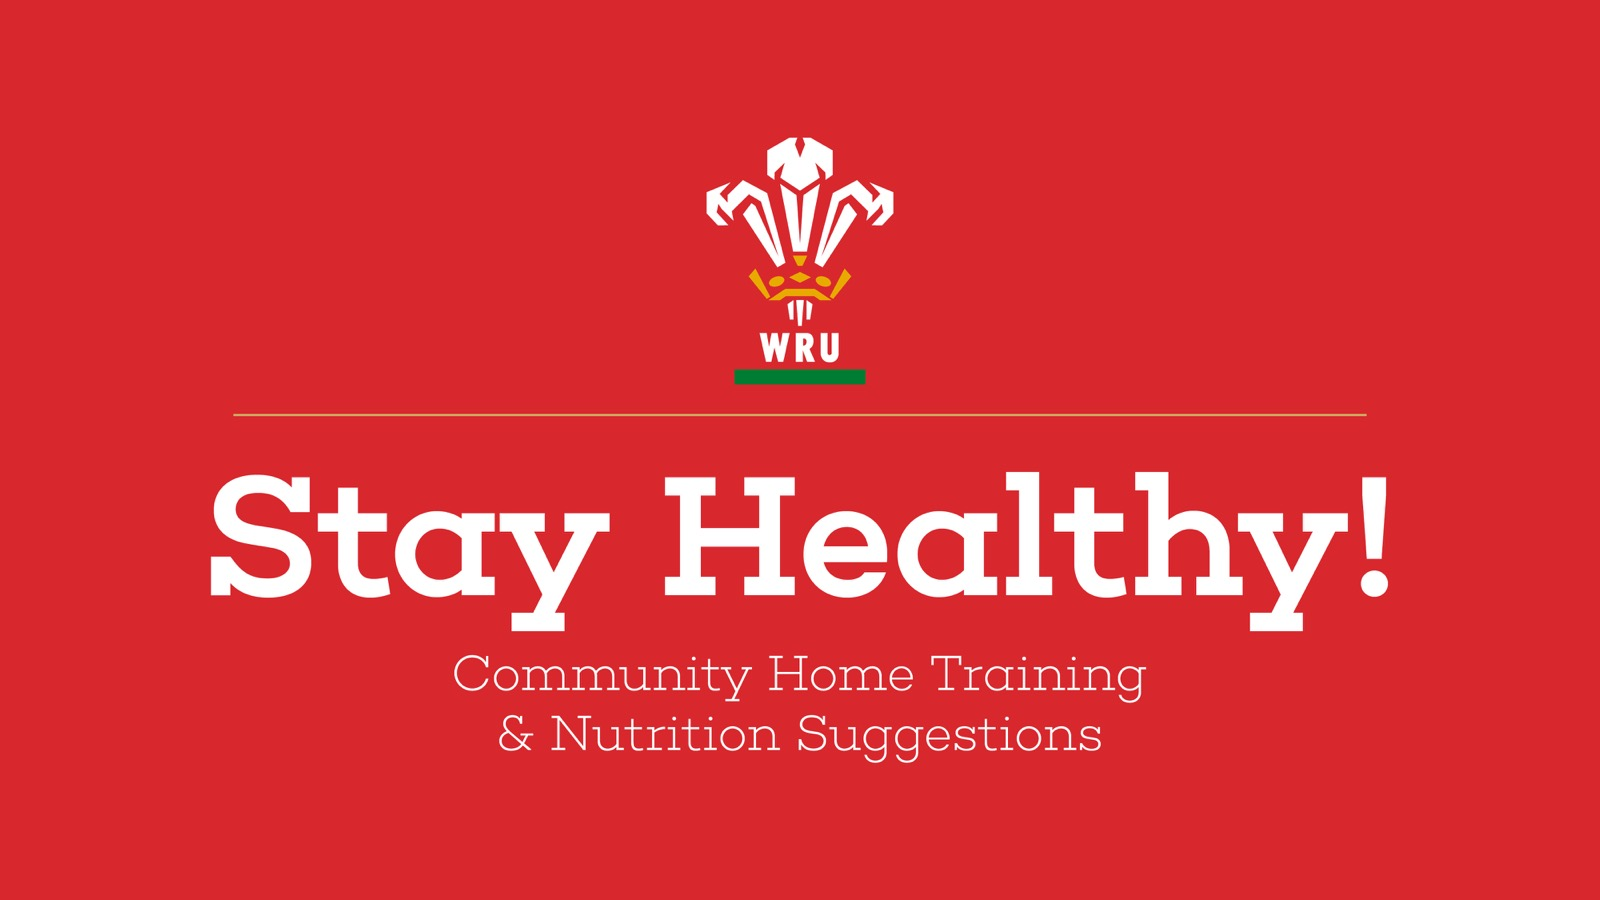 Stay Active and Healthy with Welsh Rugby